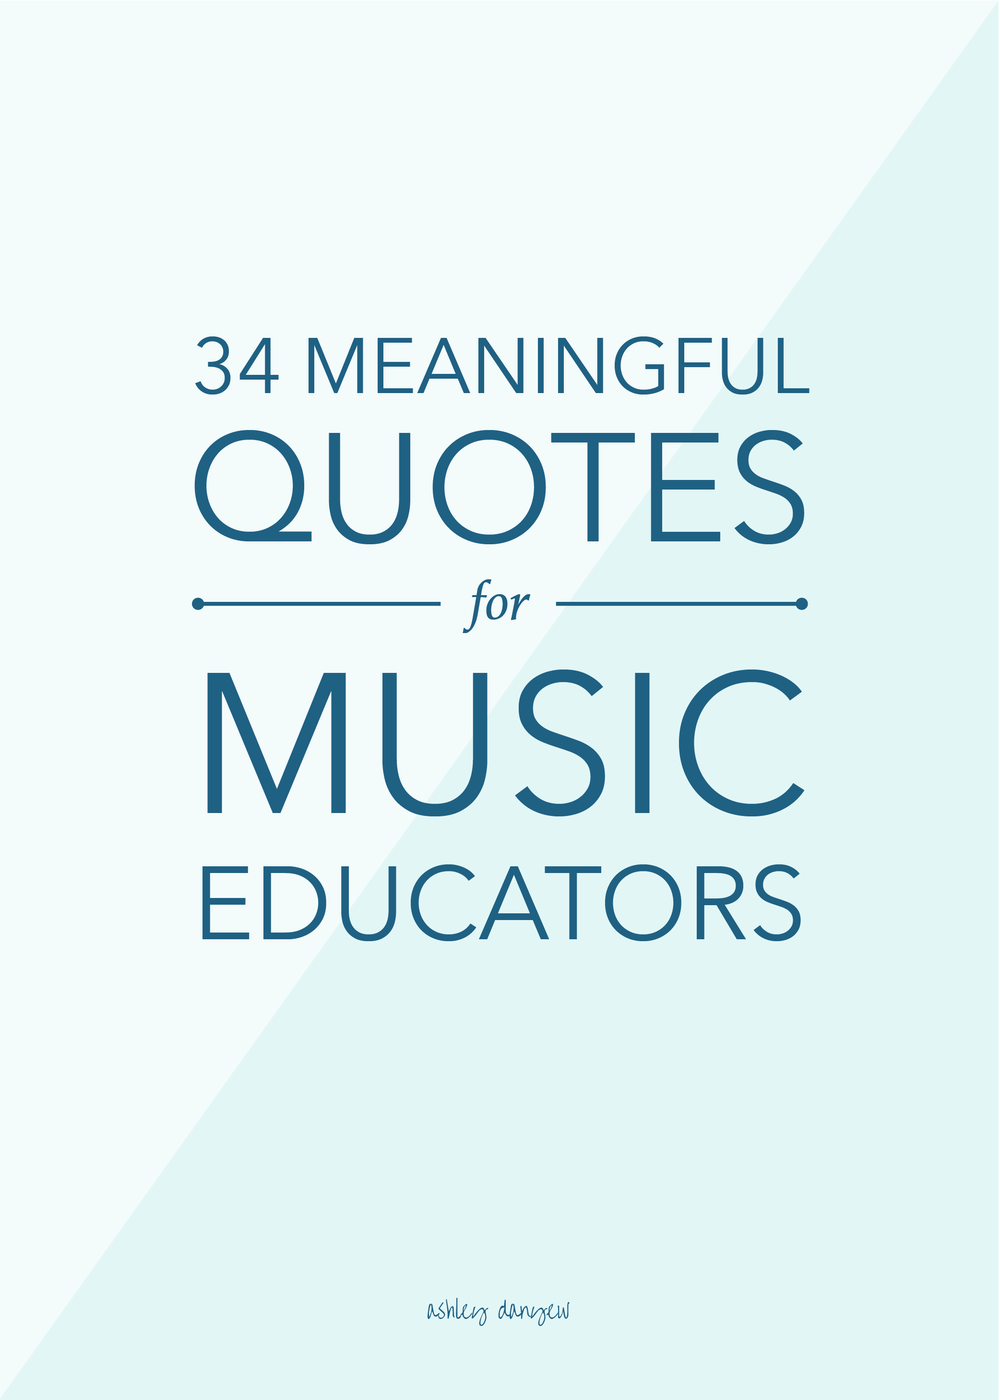 34 Meaningful Quotes for Music Educators.png